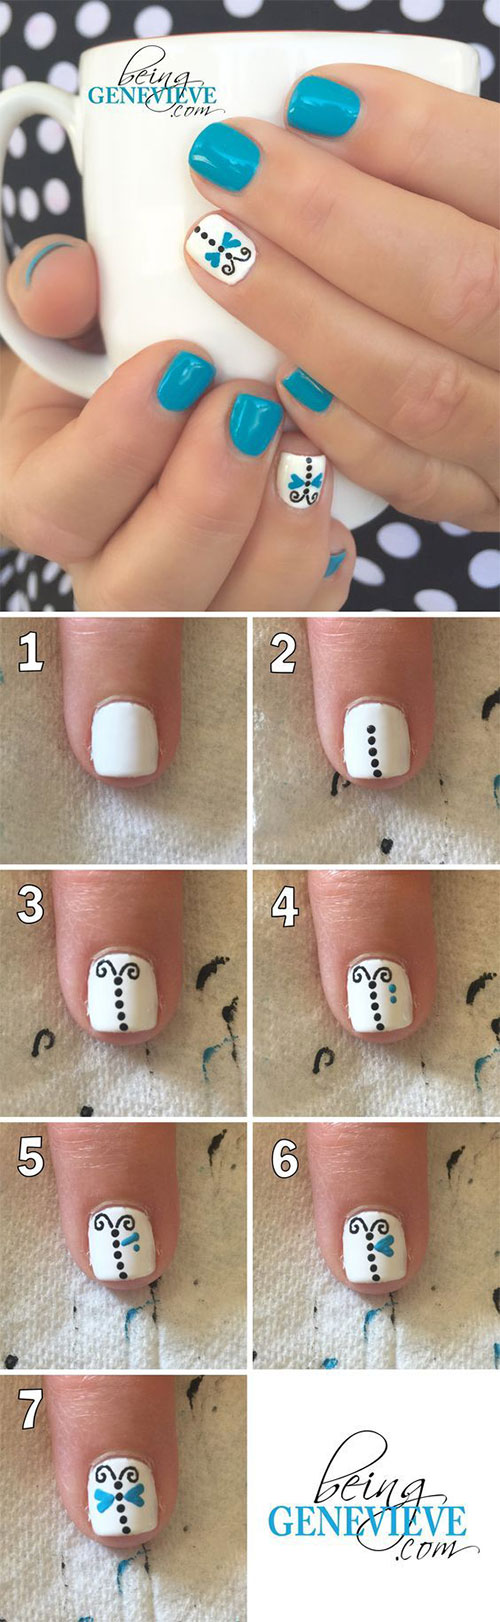 20-Easy-Step-By-Step-Summer-Nail-Art-Tutorials-For-Beginners-2016-3